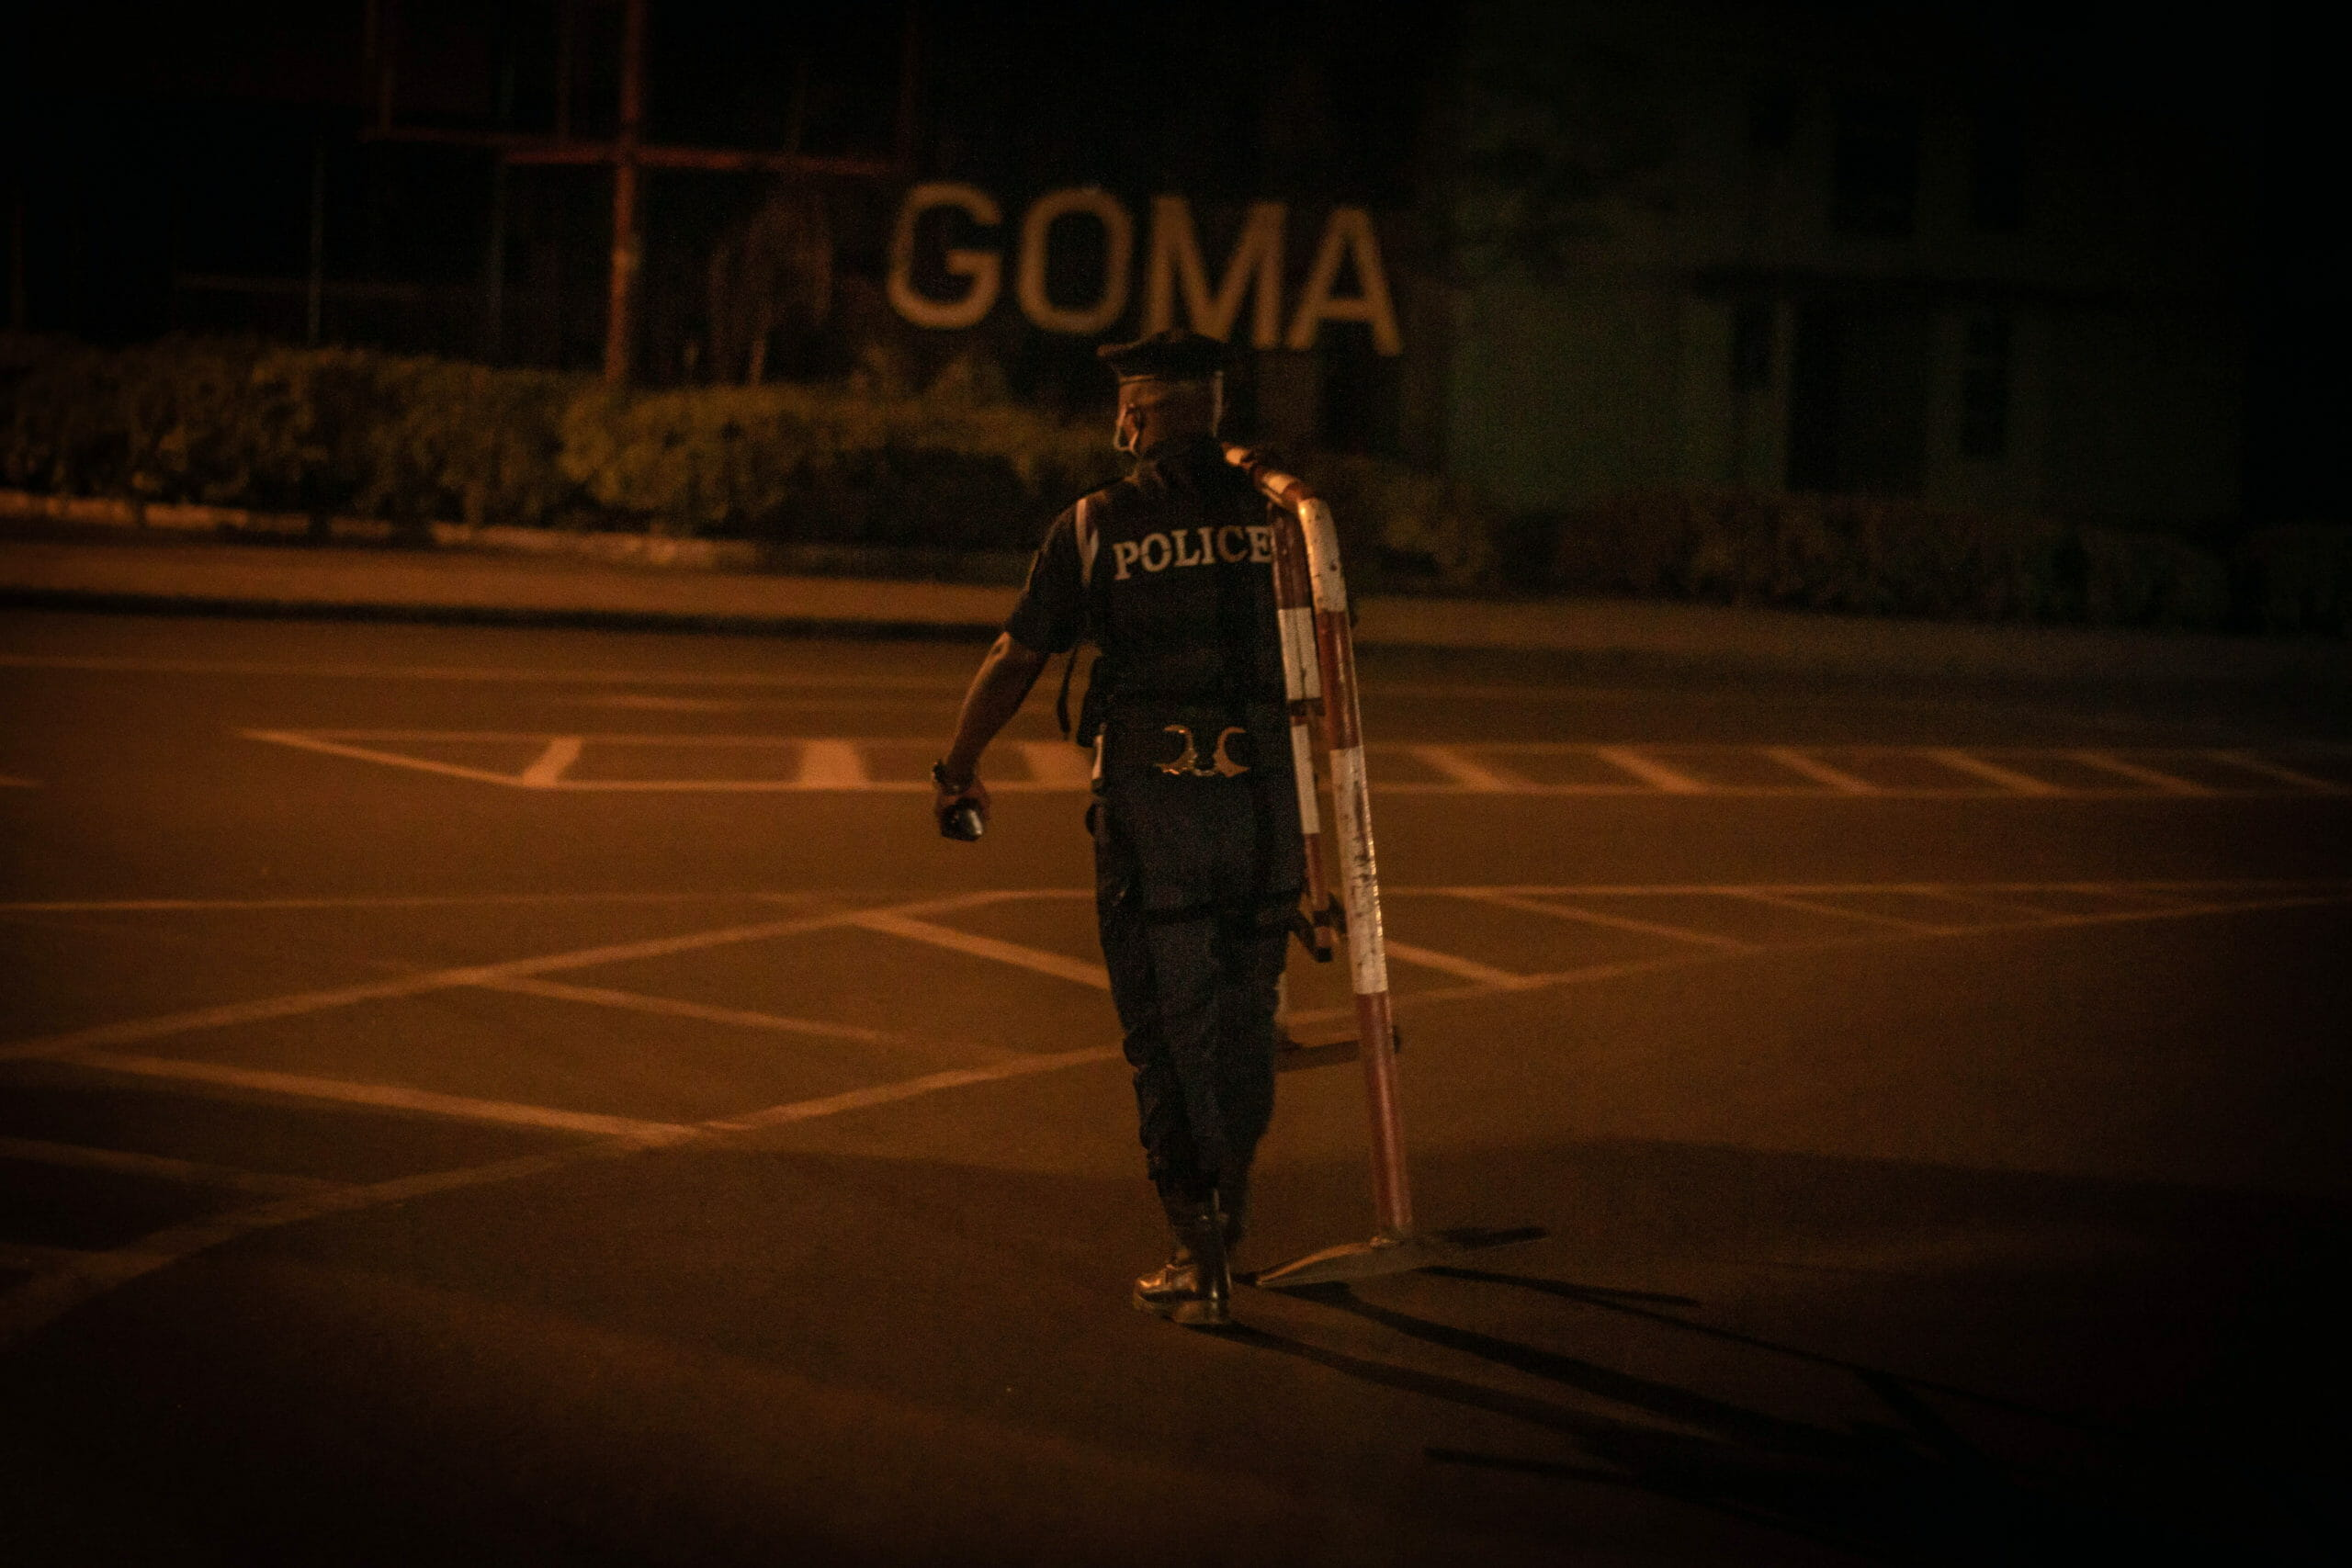 Goma, DRC, May 20th, 2020. A police officer sets up a roadblock to enforce a new curfew imposed to limit the spread of coronavirus in the eastern Congolese city of Goma on Wednesday. © Guerchom Ndebo for Fondation Carmignac